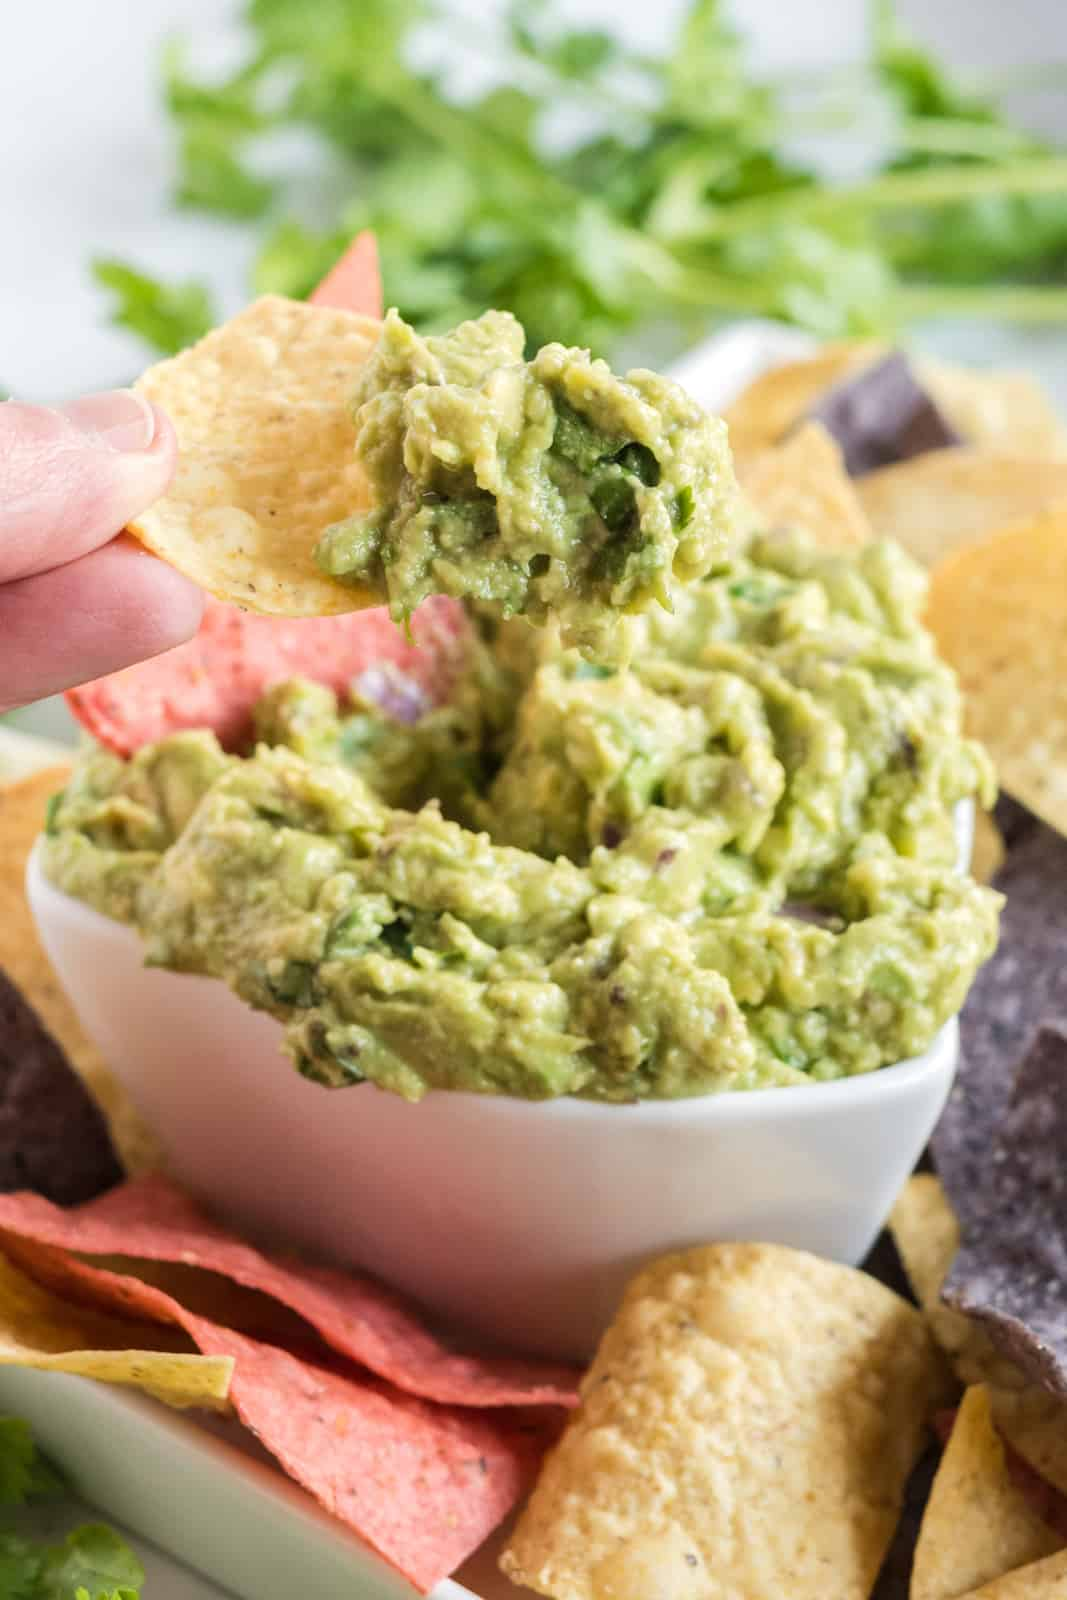 Hand scooping some guacamole one chip